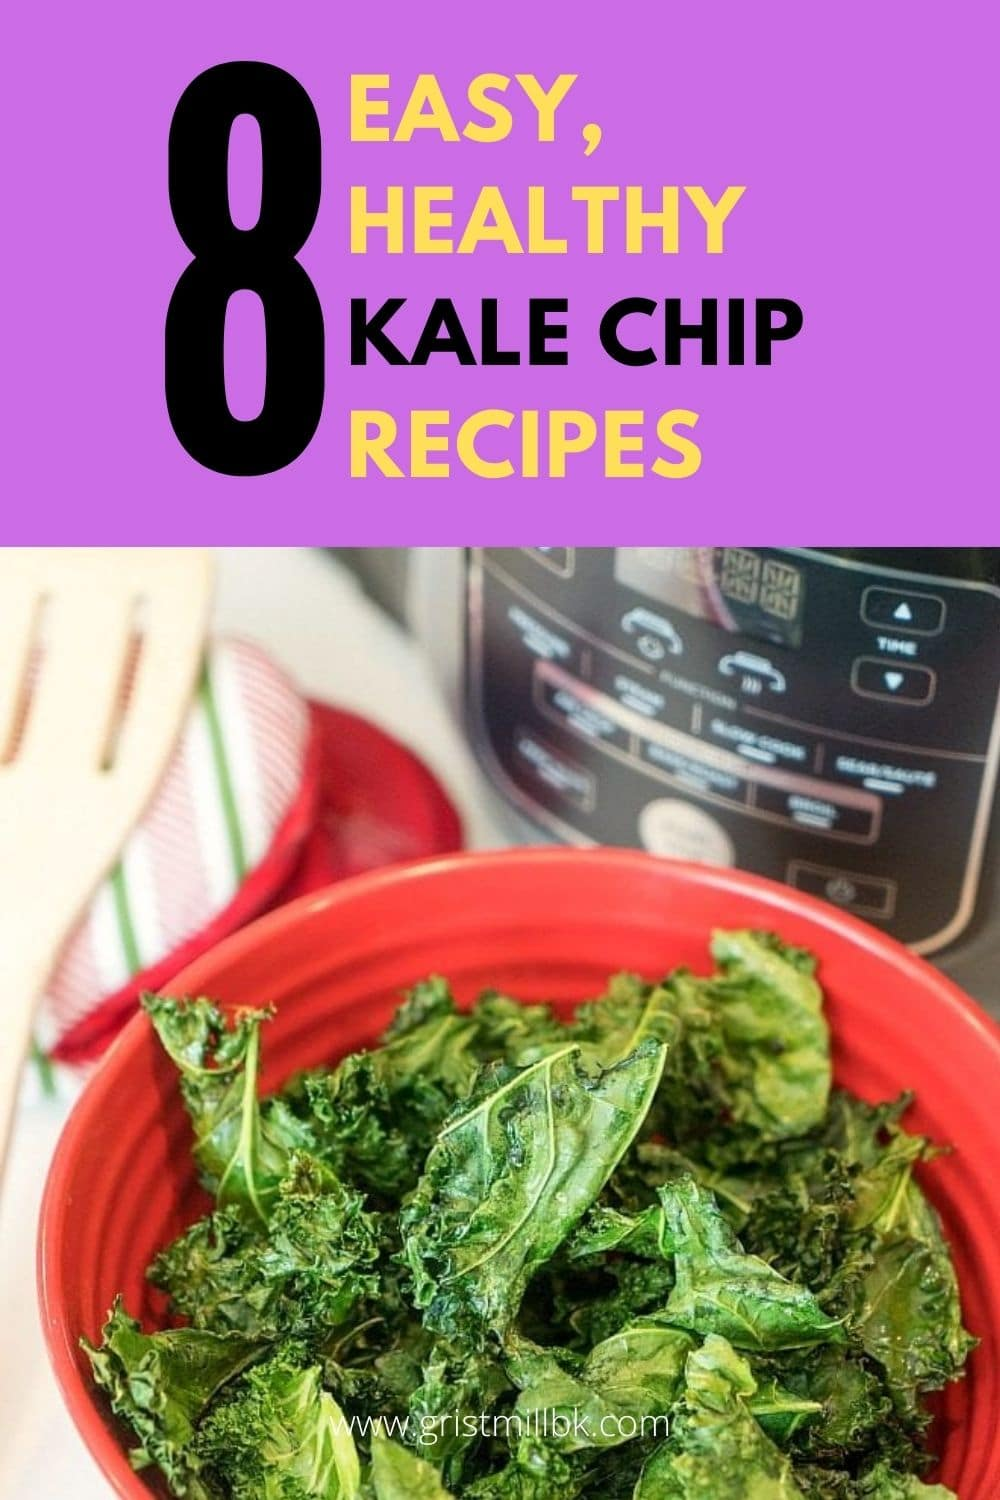 easy, healthy kale chip recipes